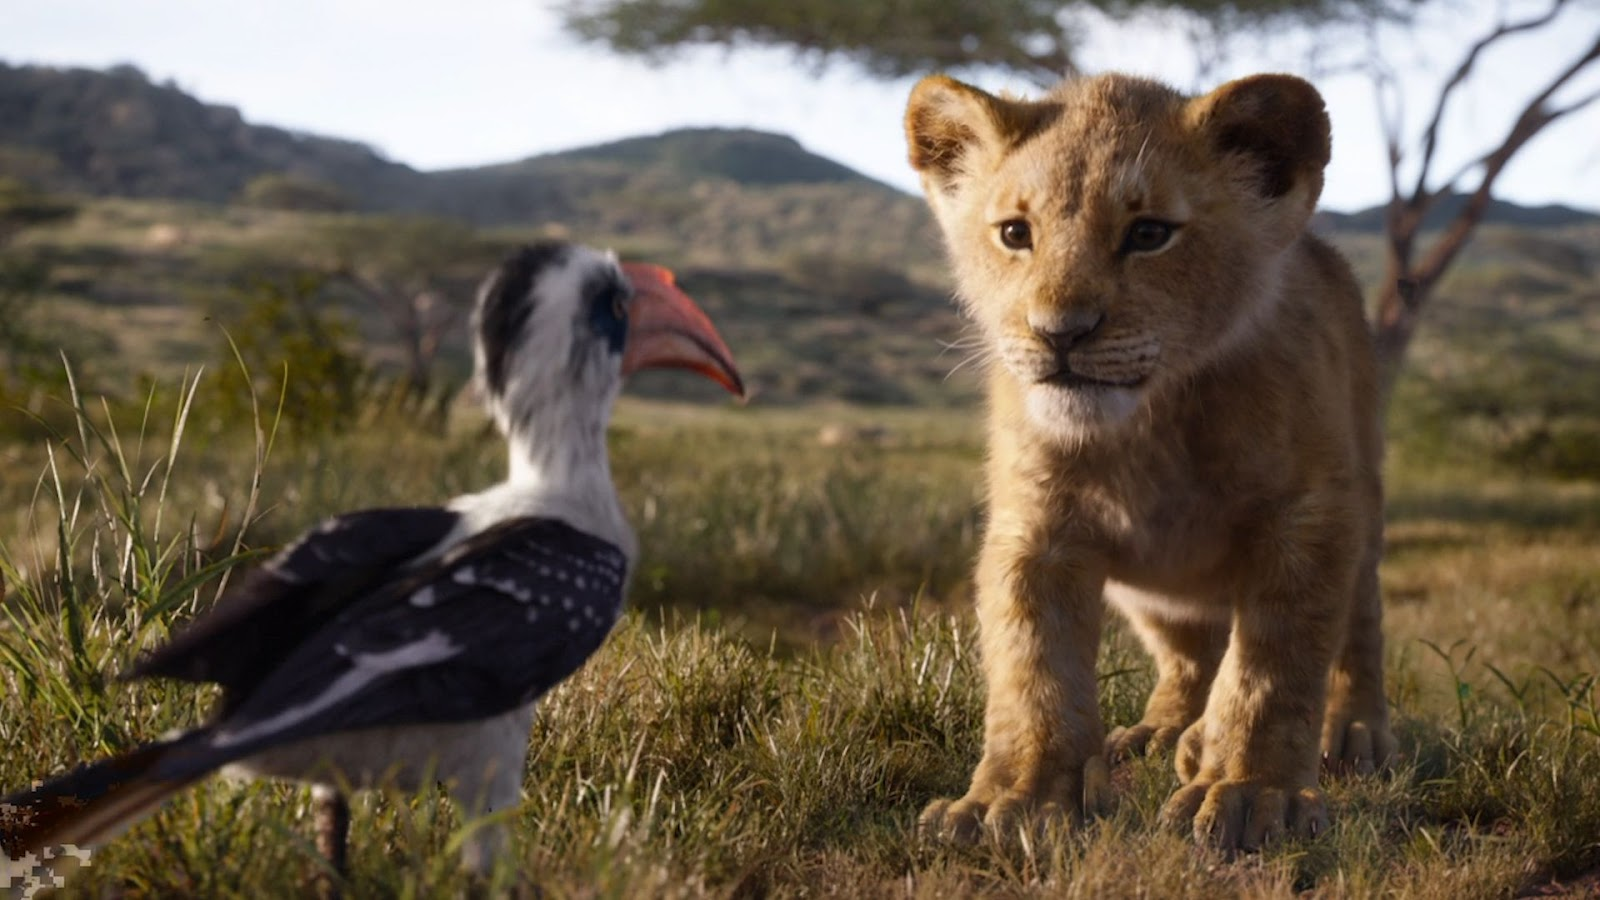 https://www.indiewire.com/wp-content/uploads/2019/04/63a33028-5f48-460e-9eed-007171960481-VPCTRAILER_THE_LION_KING_DESK_THUMB.jpg